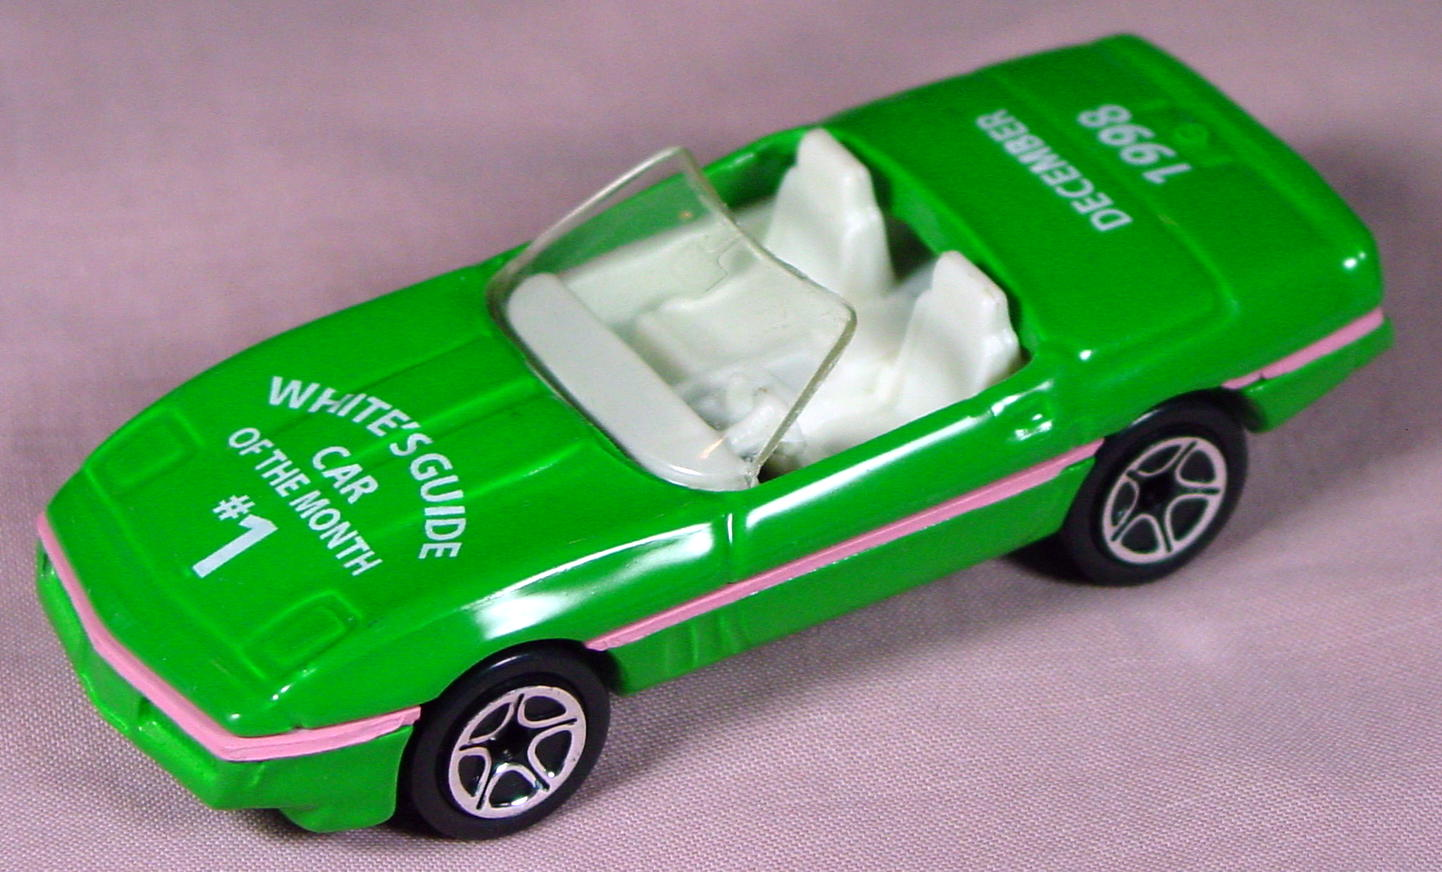 ASAP-CCI 14 G 48 - 87 Corvette Green Whites Guide Month Dec 98 made in China CCI